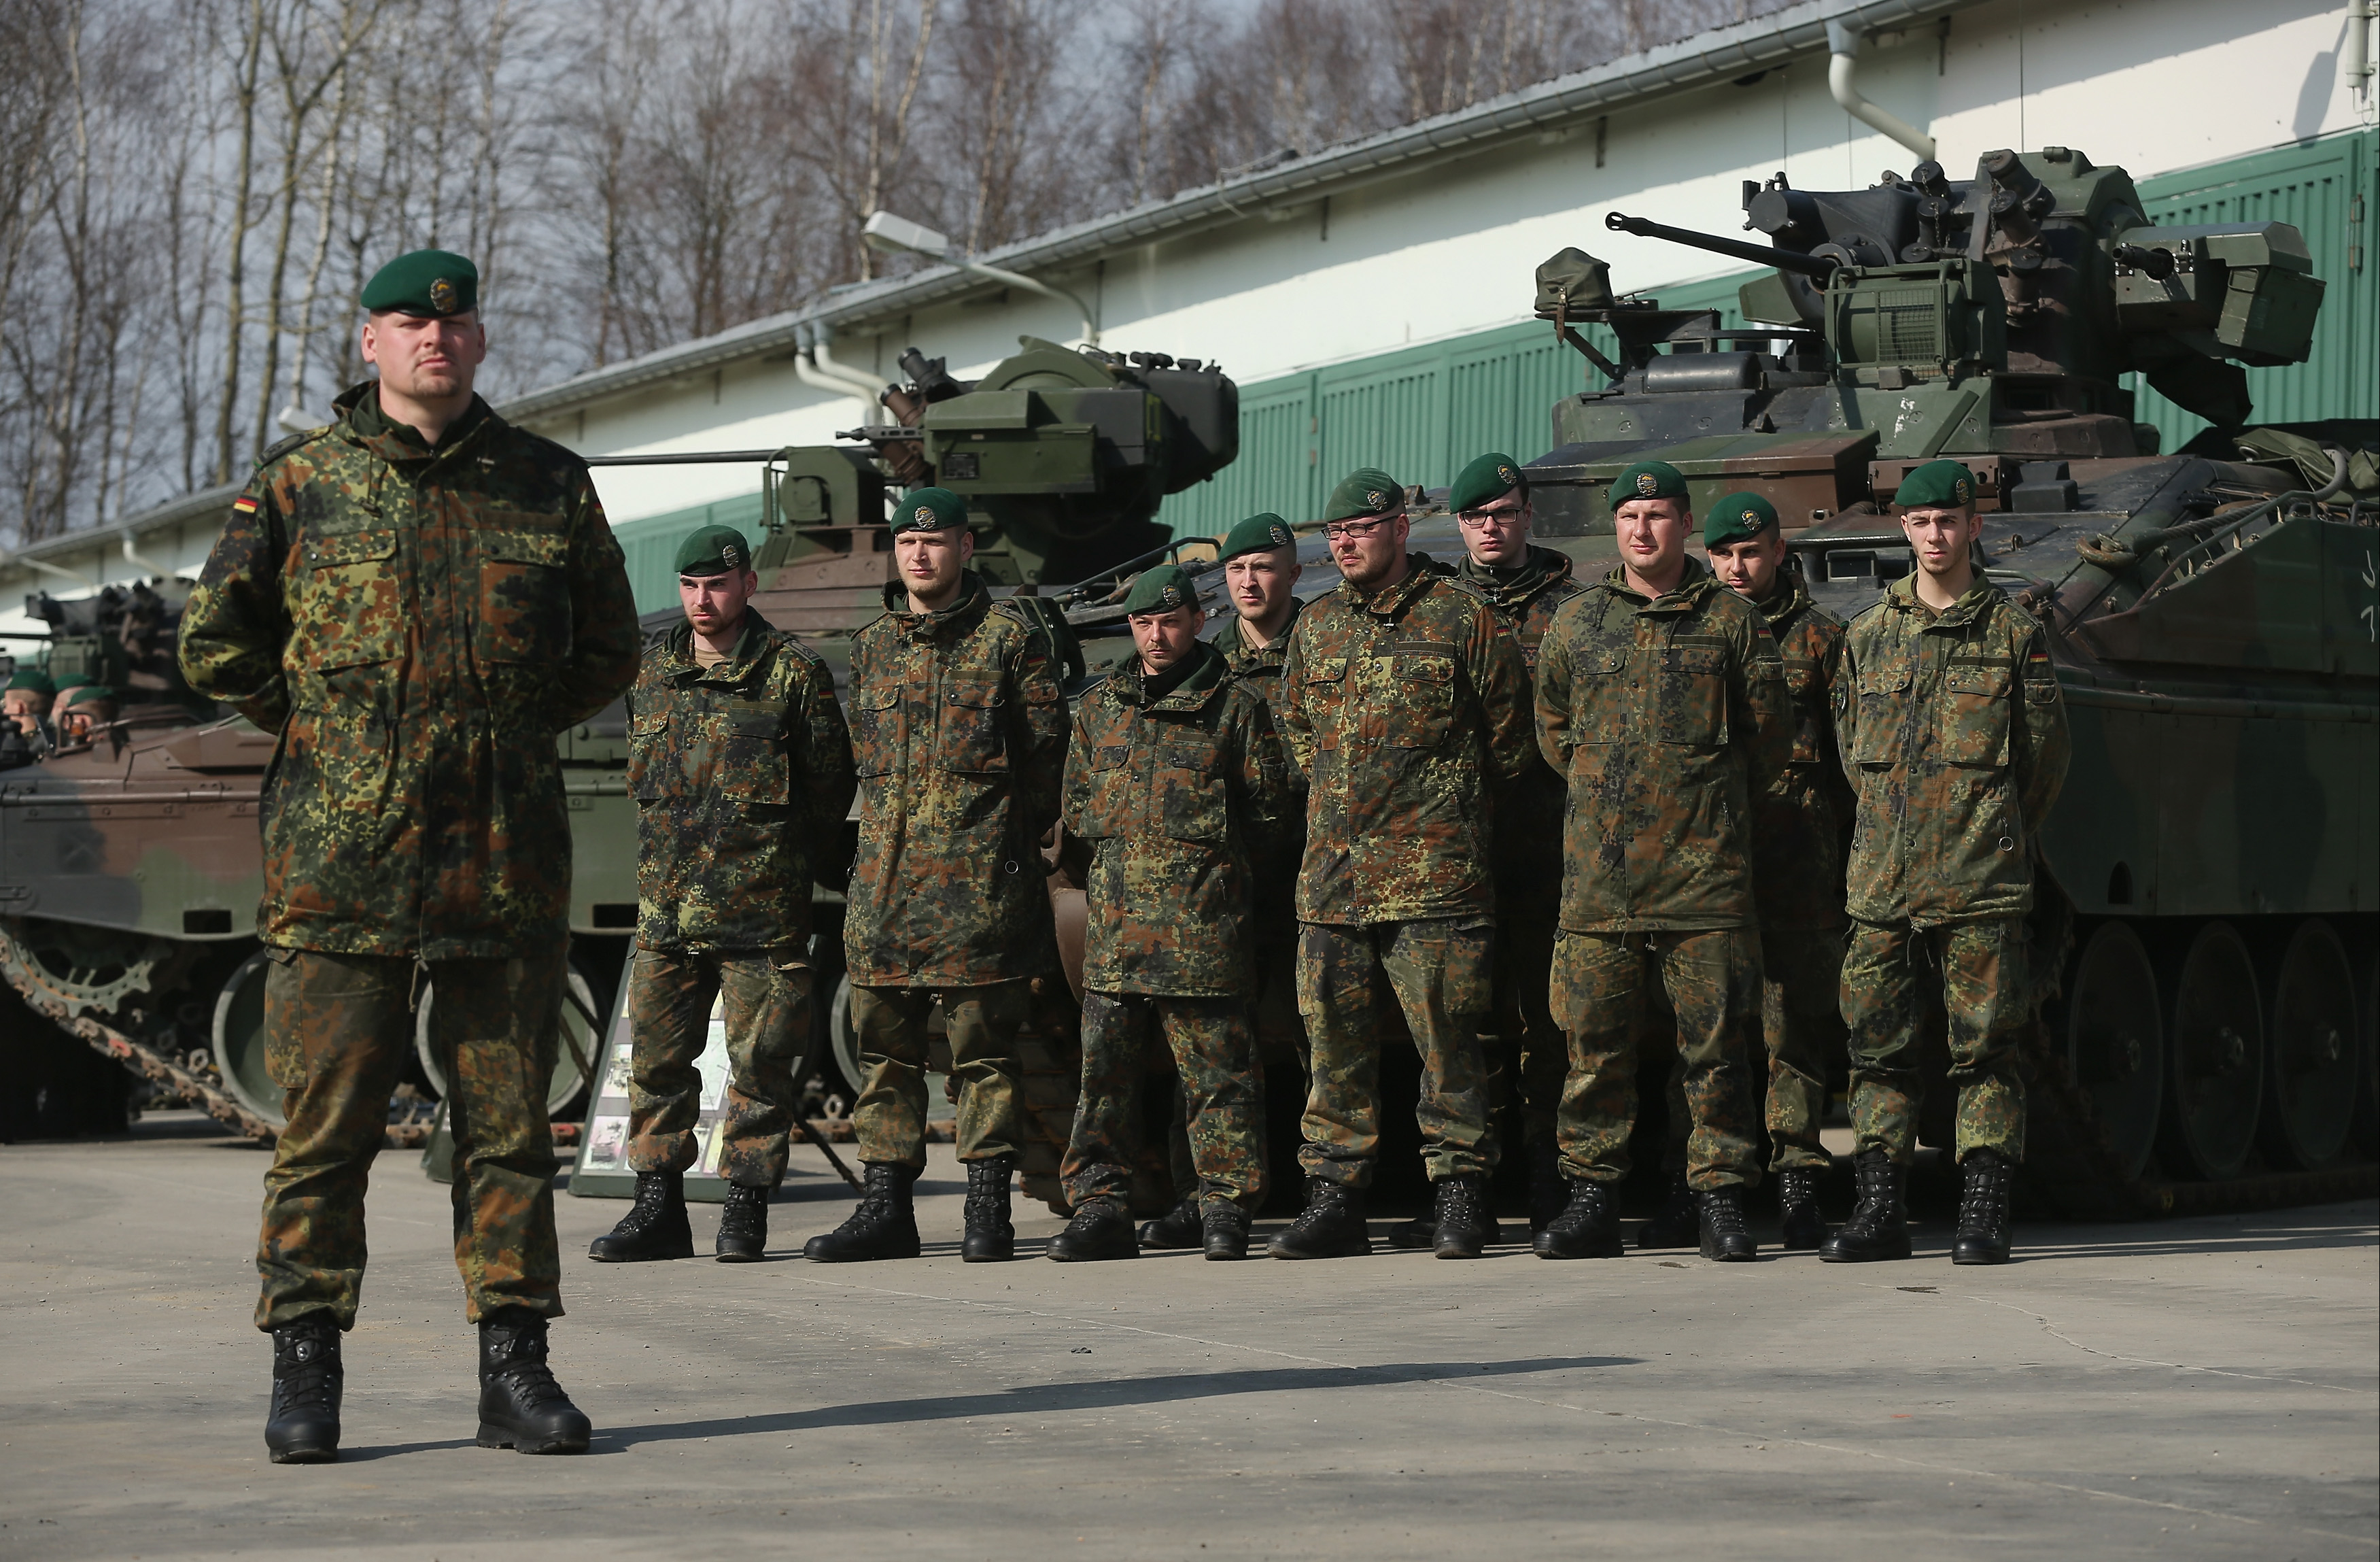 MARIENBERG, GERMANY - MARCH 10: Members of the German Bundeswehr's 371st Armoured Infantry Battalion (Panzergredanadierbataillon 371) stand to attention with Marder light tanks during a media event at the battalion's base on March 10, 2015 in Marienberg, Germany.